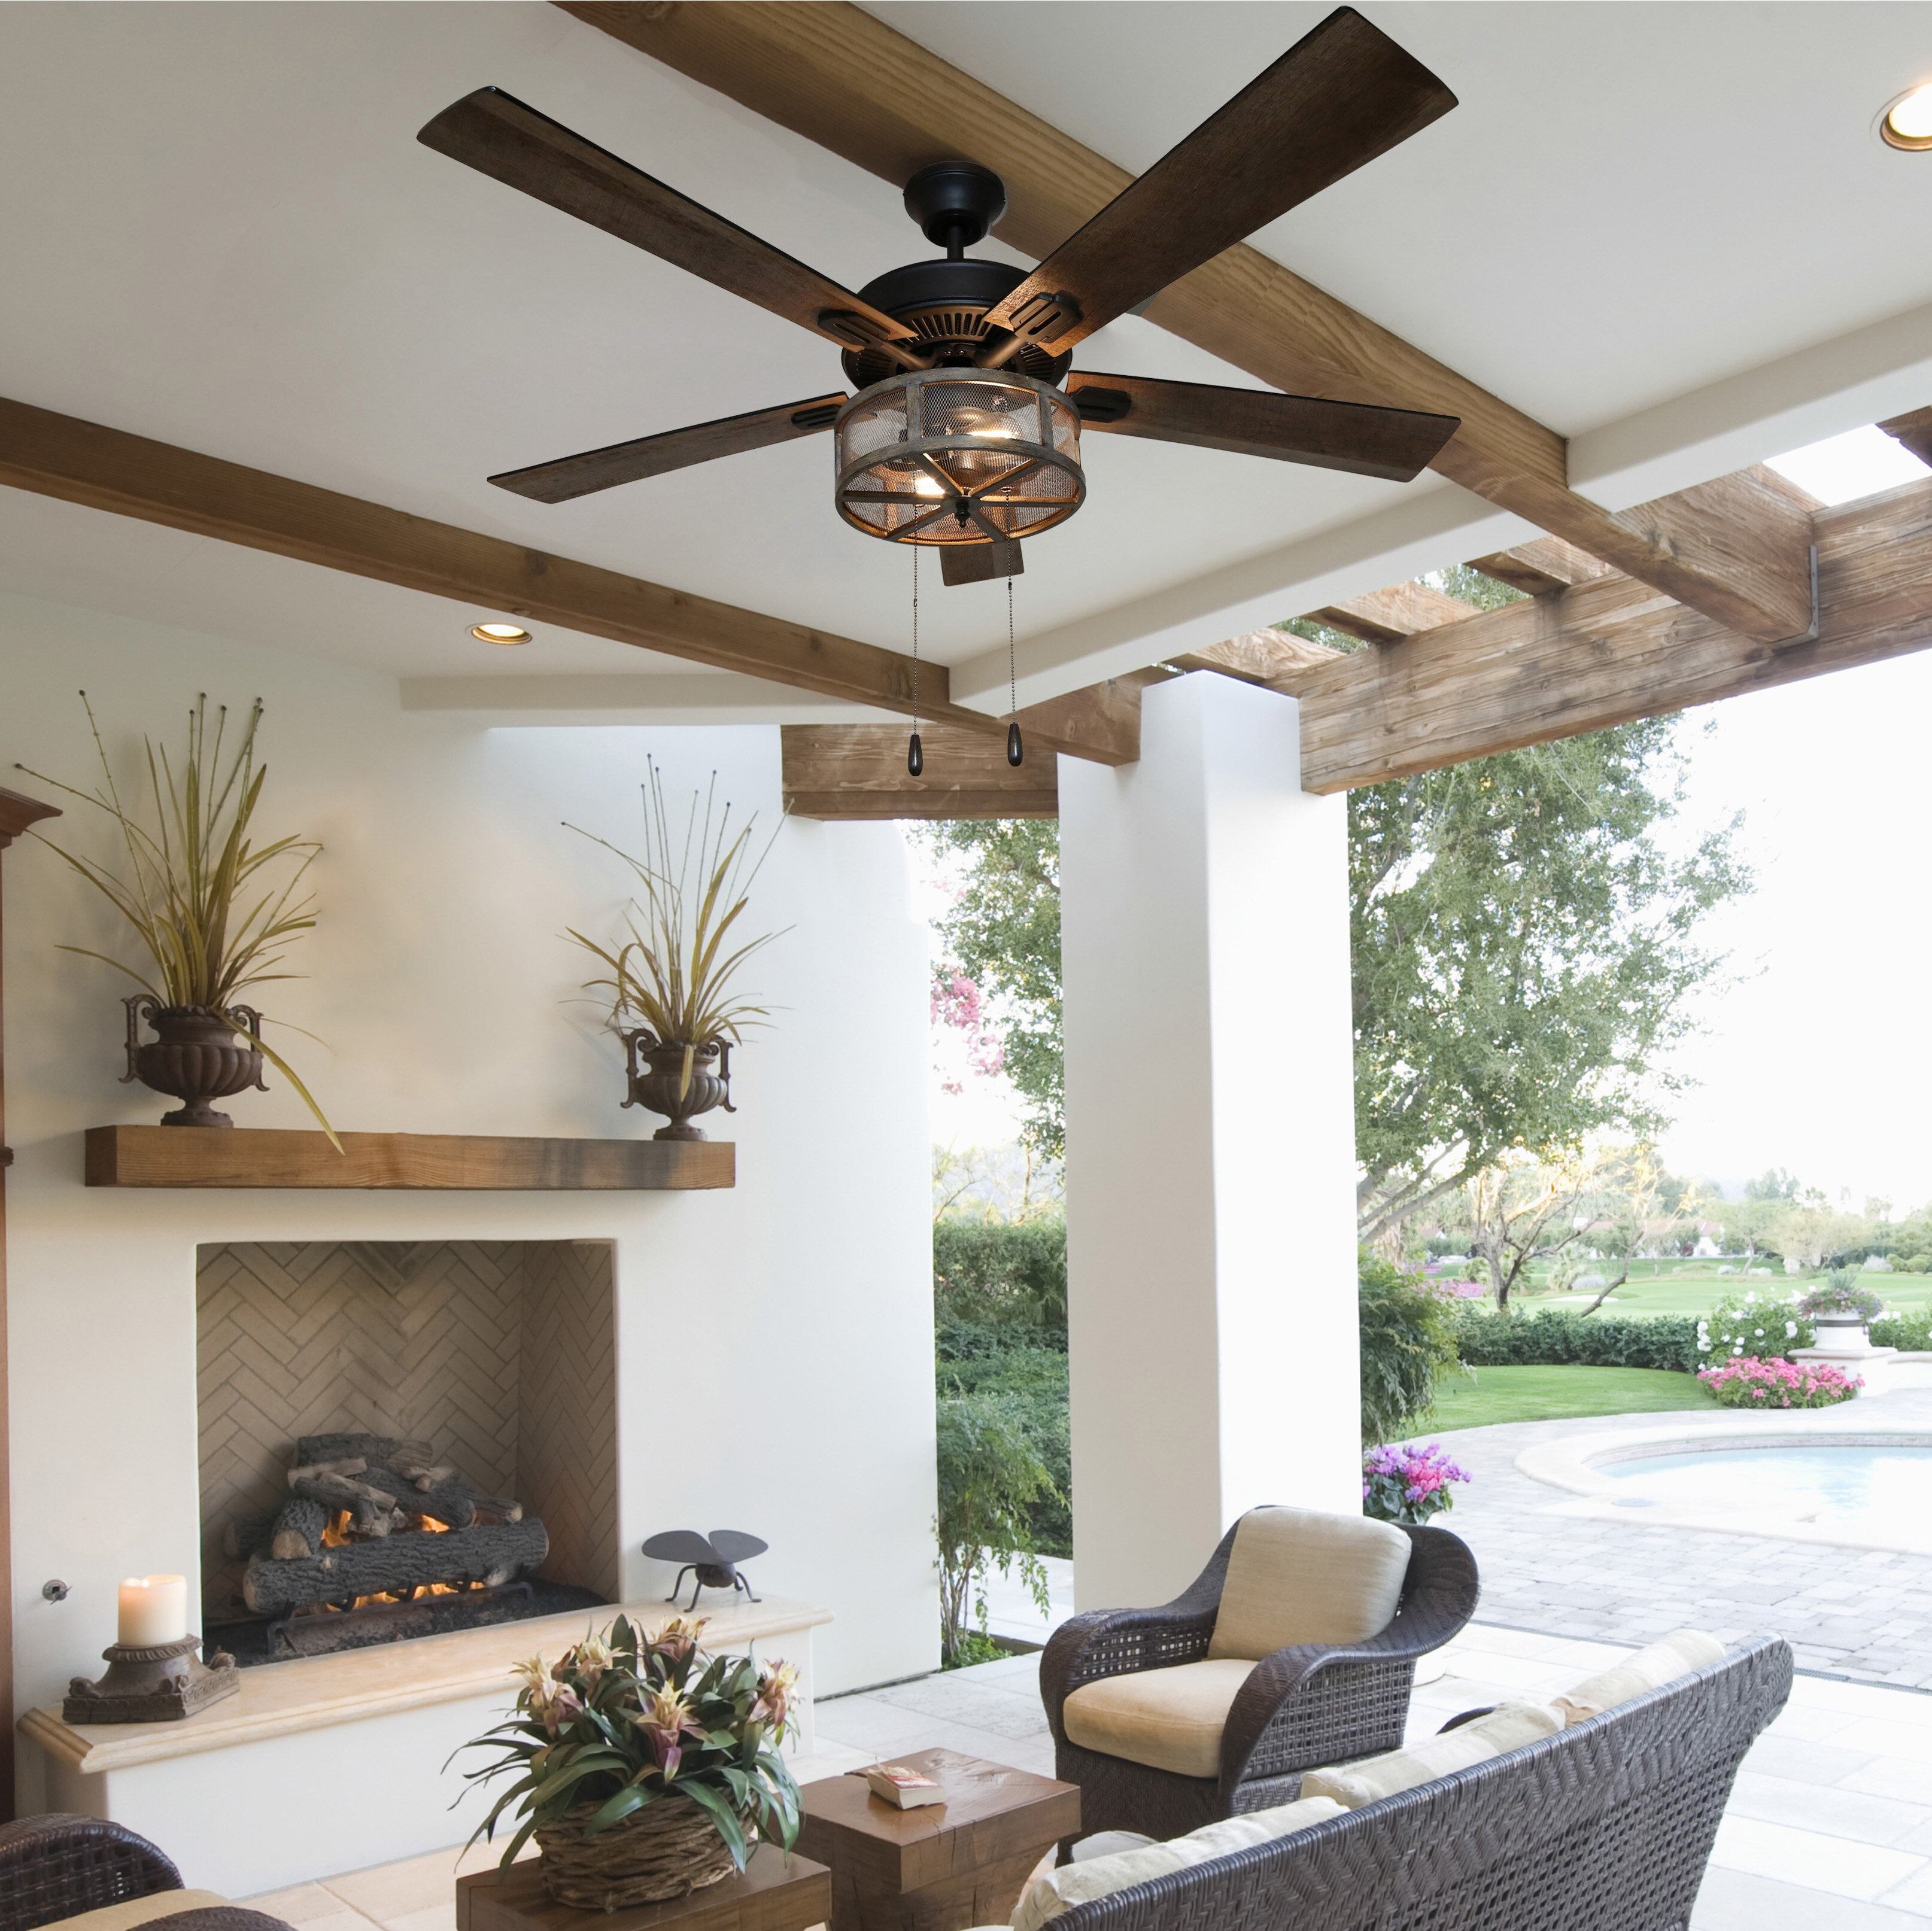 52 Easterling 5 Blade Caged Ceiling Fan With Pull Chain And Light Kit Included Reviews Birch Lane